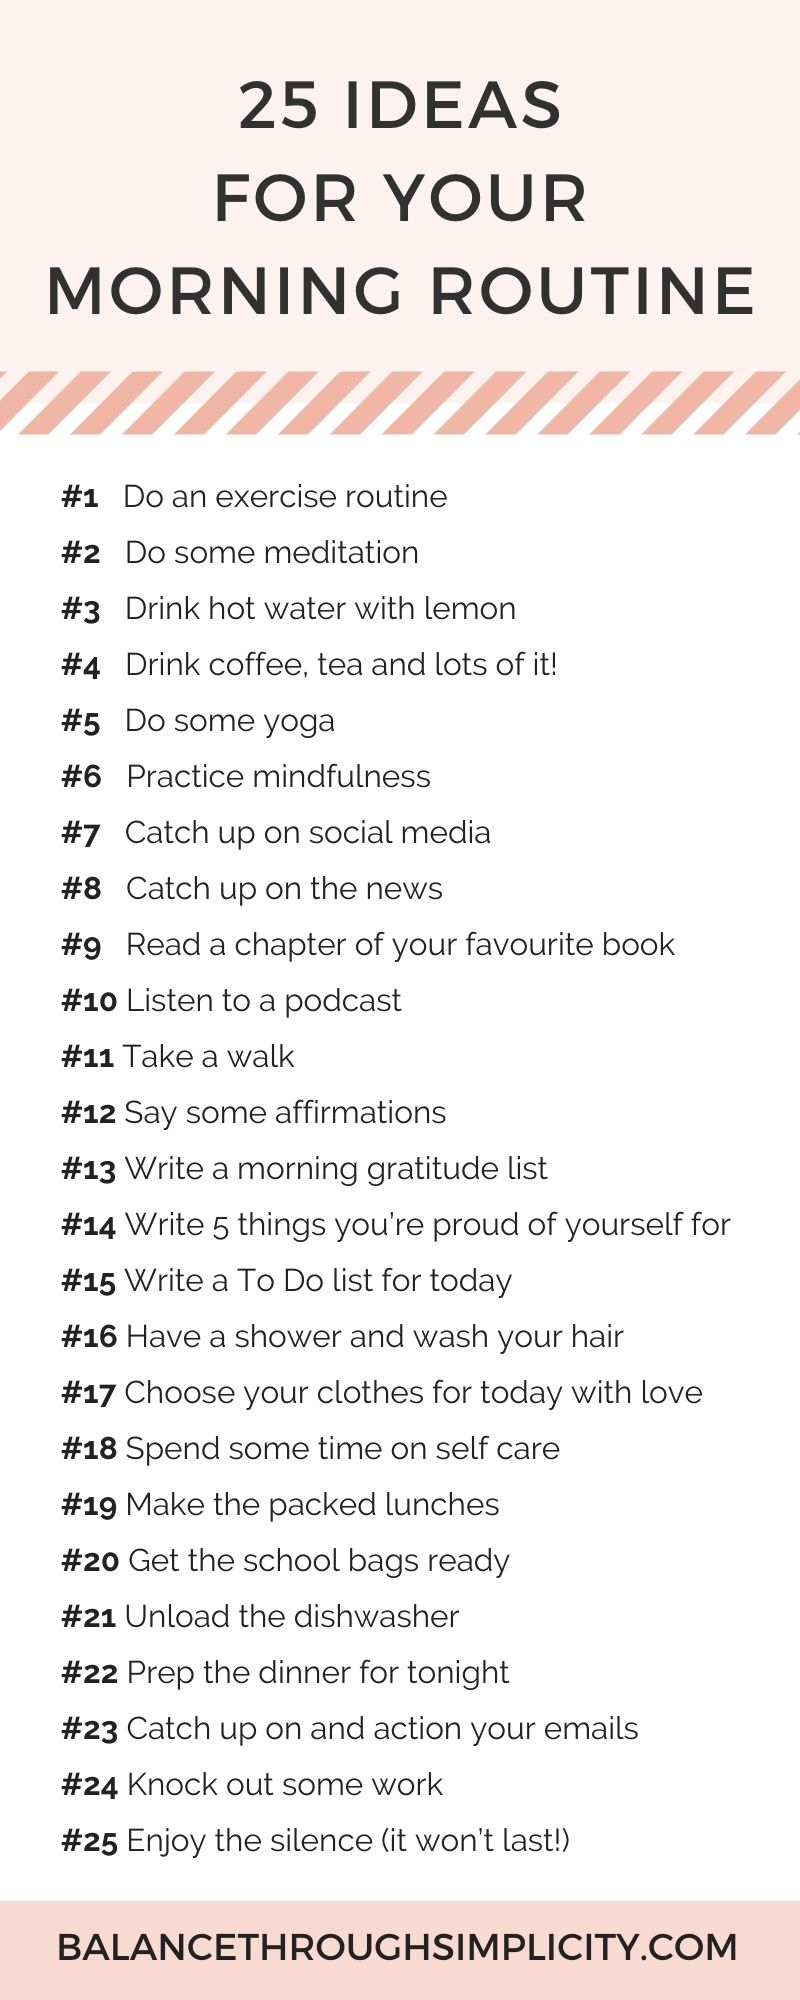 25 ideas for your morning routine